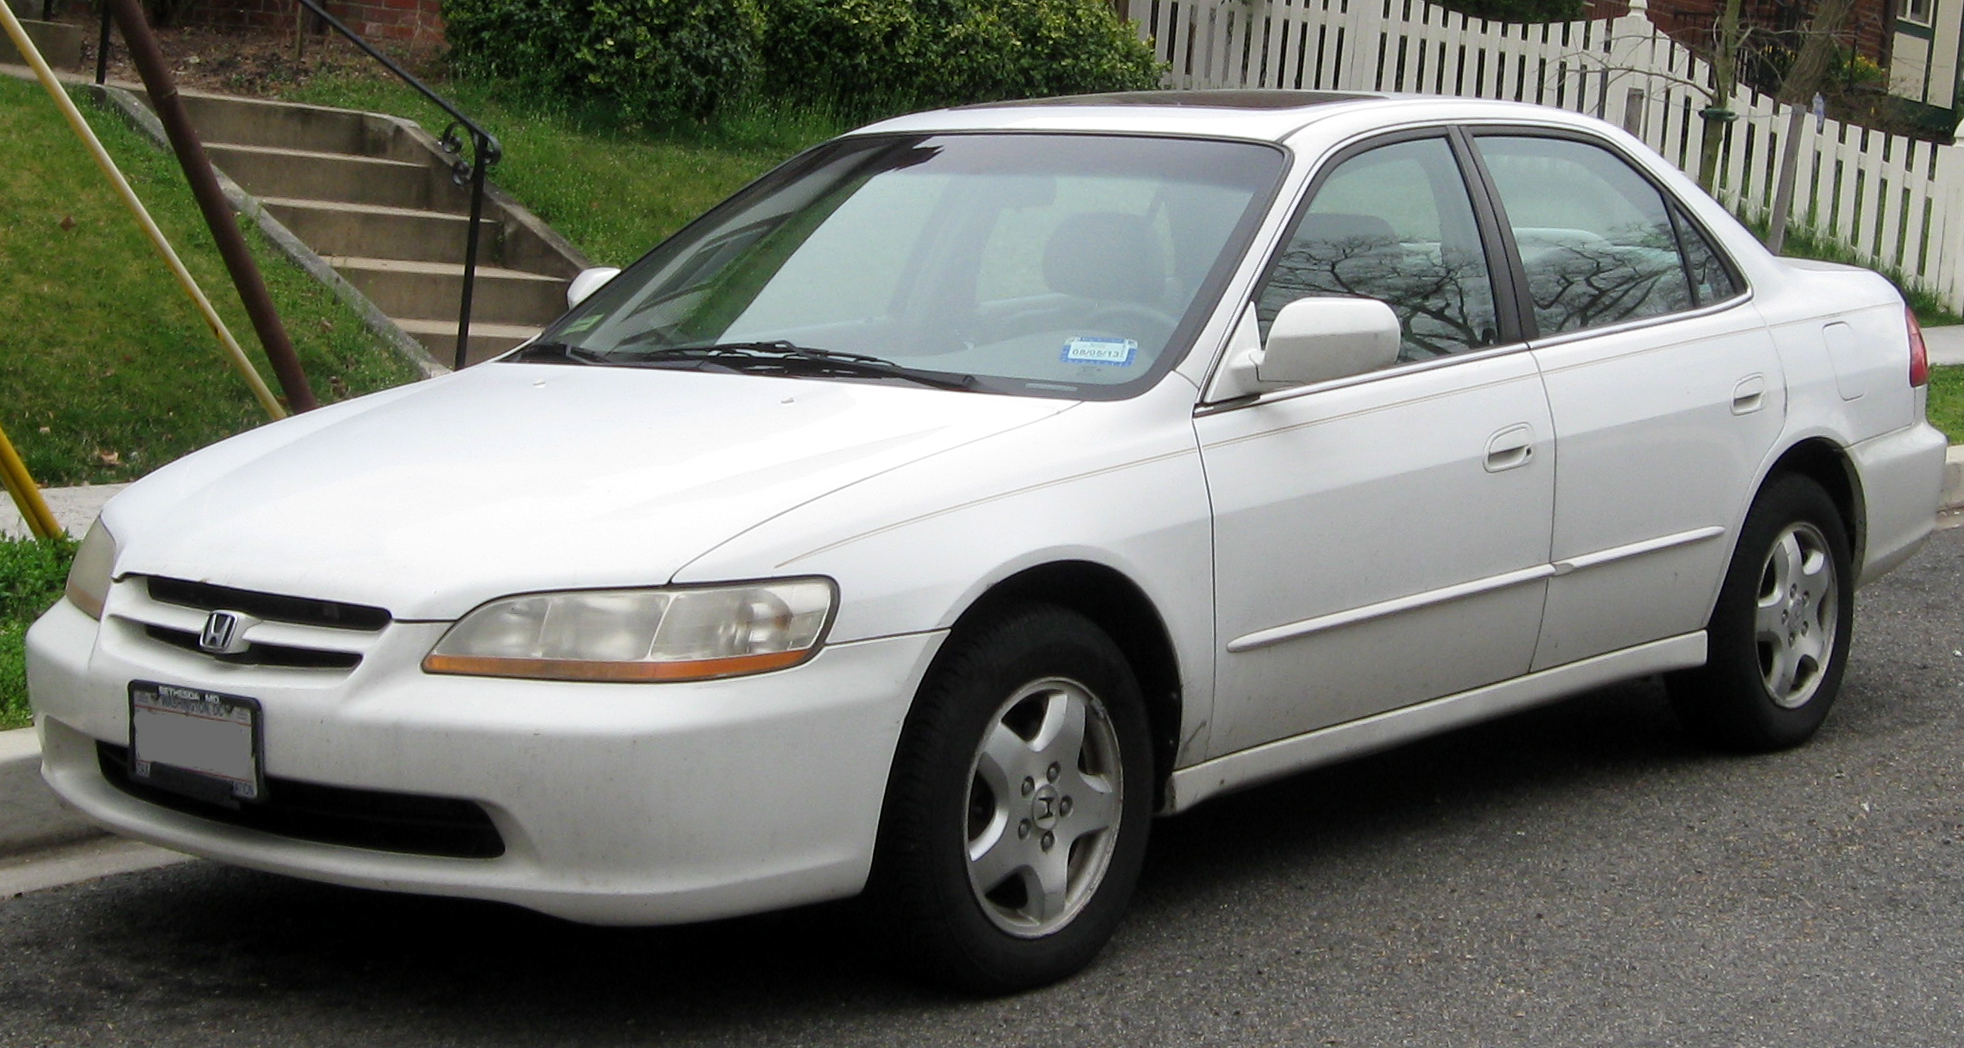 Description 1998-2000 Honda Accord sedan -- 03-16-2012.JPG